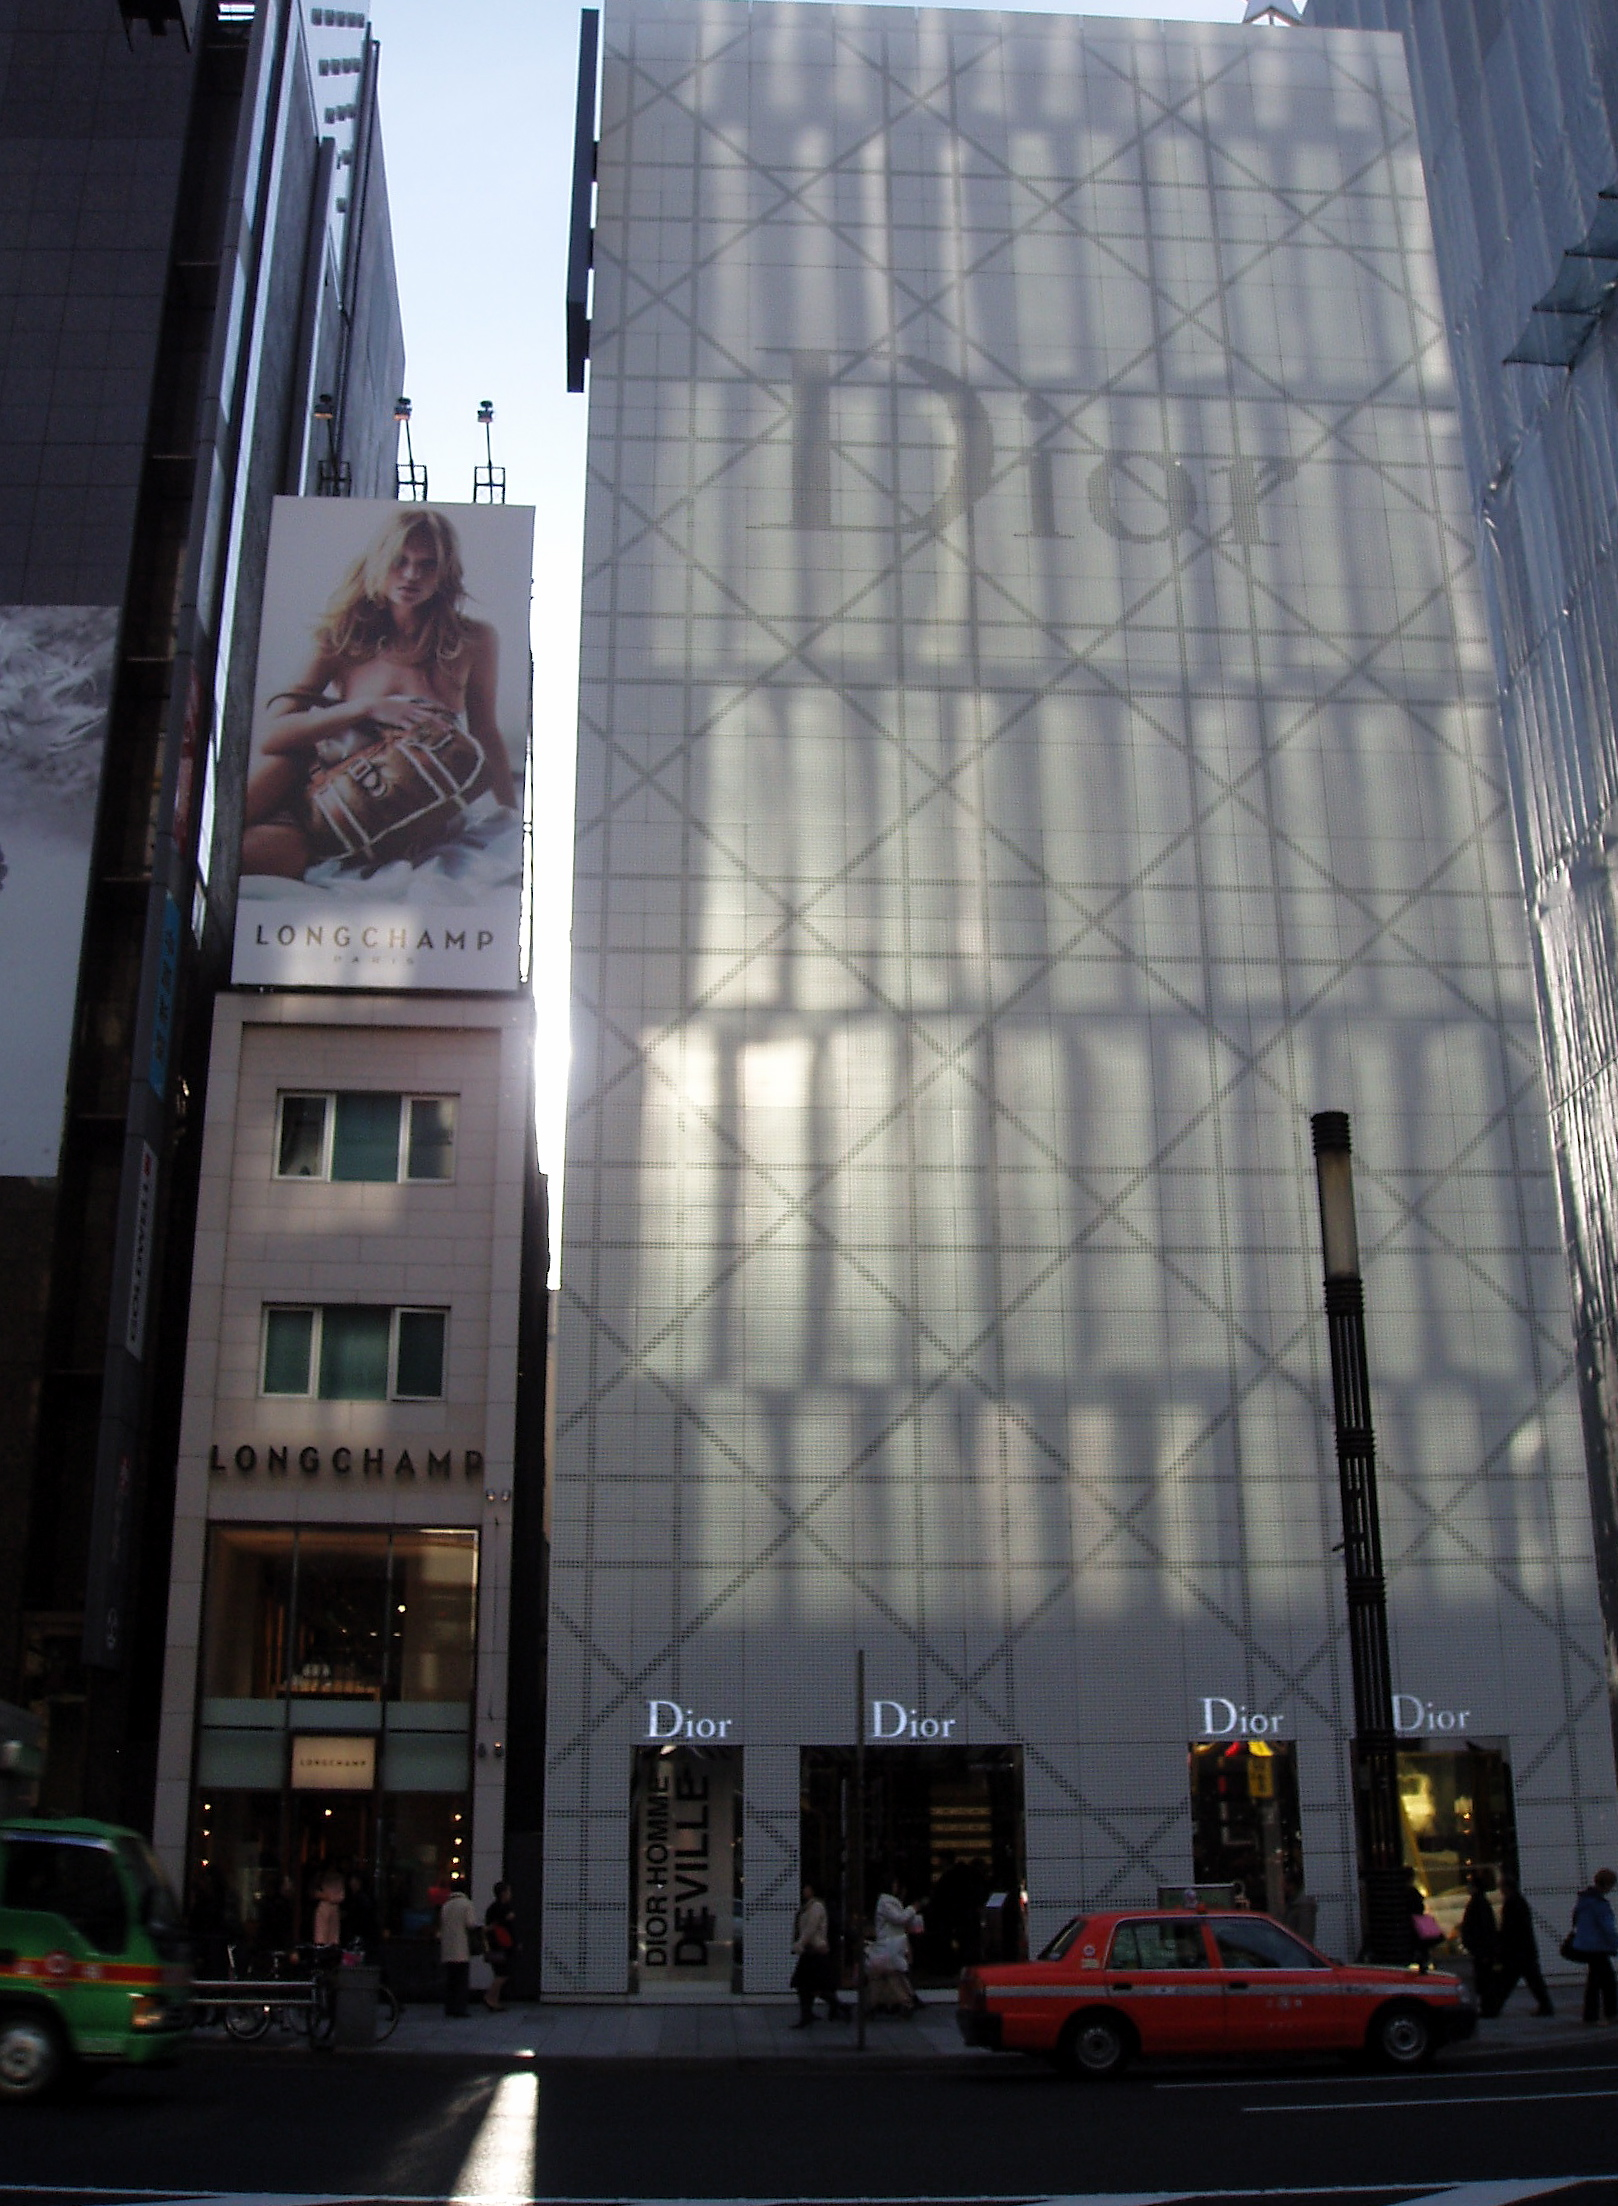 f1408db7e055 The Dior flagship boutique in the upscale Ginza shopping district of Tokyo.  First opened in 2004.